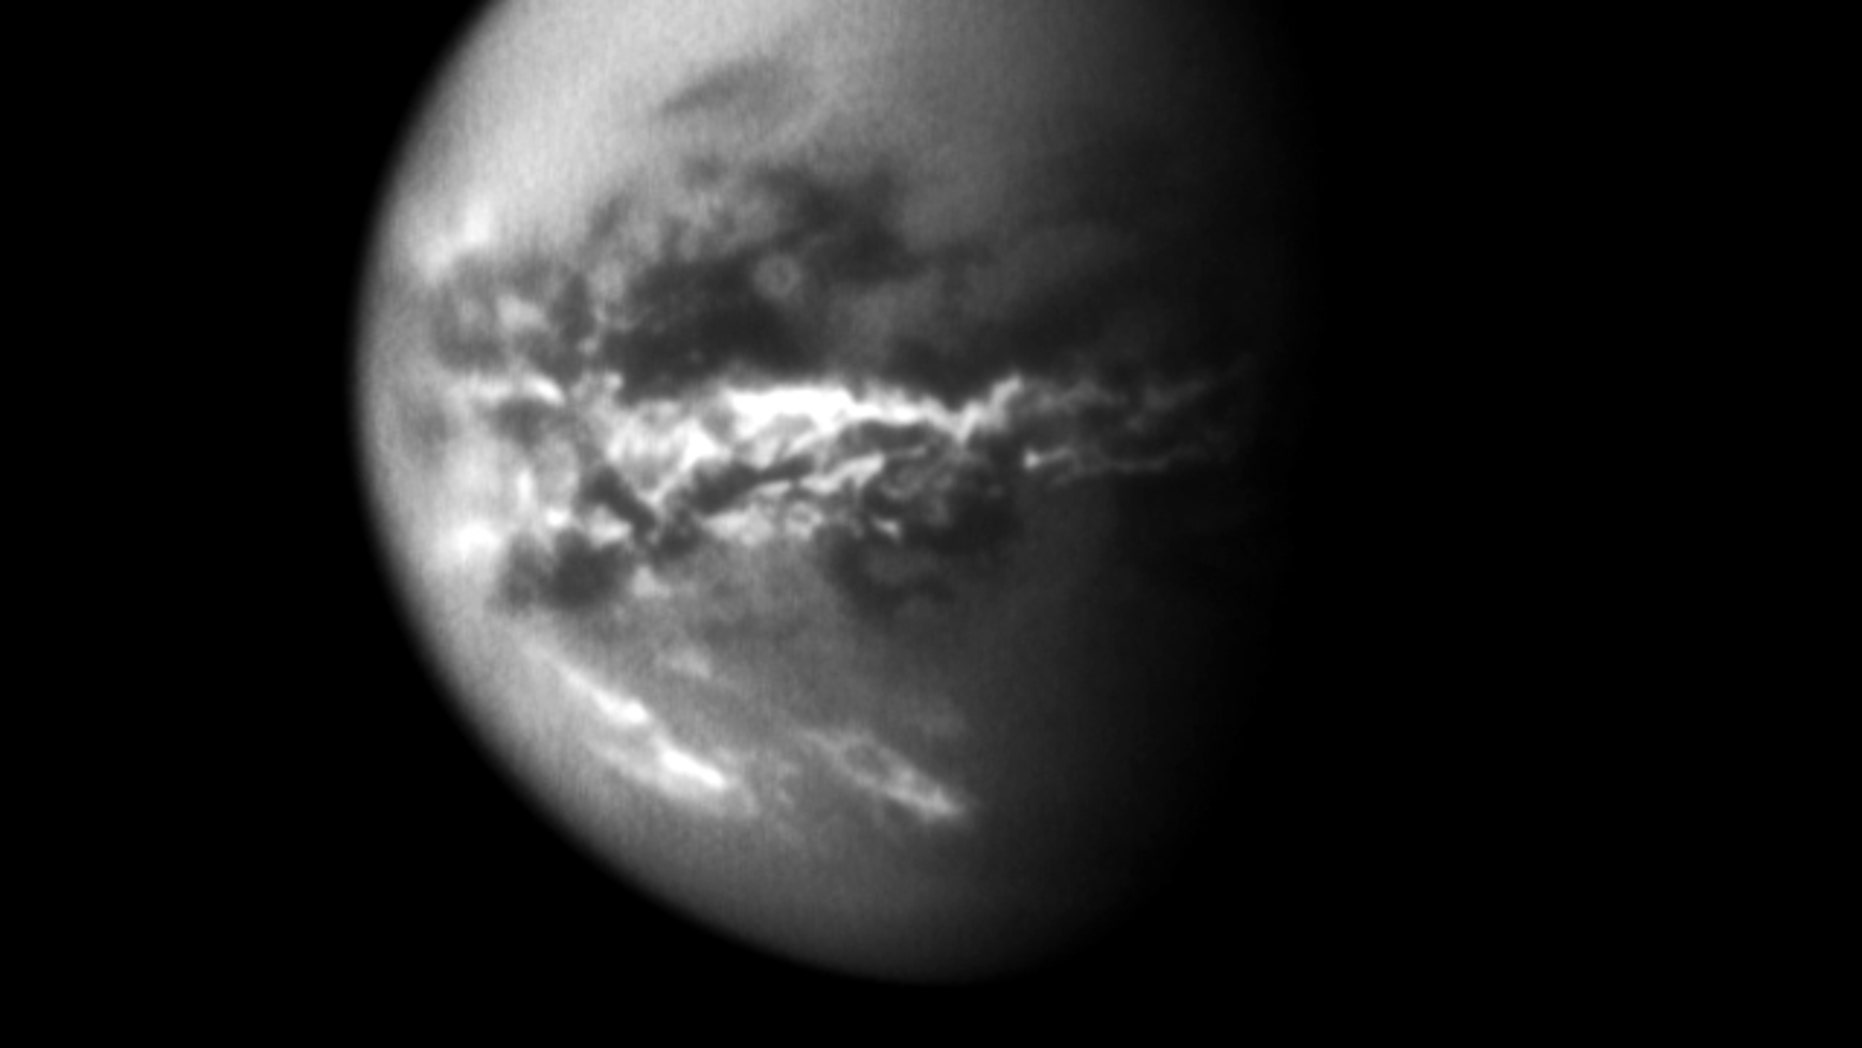 NASAs Cassini spacecraft chronicled the change of seasons as it captured clouds concentrated near the equator of Saturns largest moon, Titan, on Oct. 18, 2010.